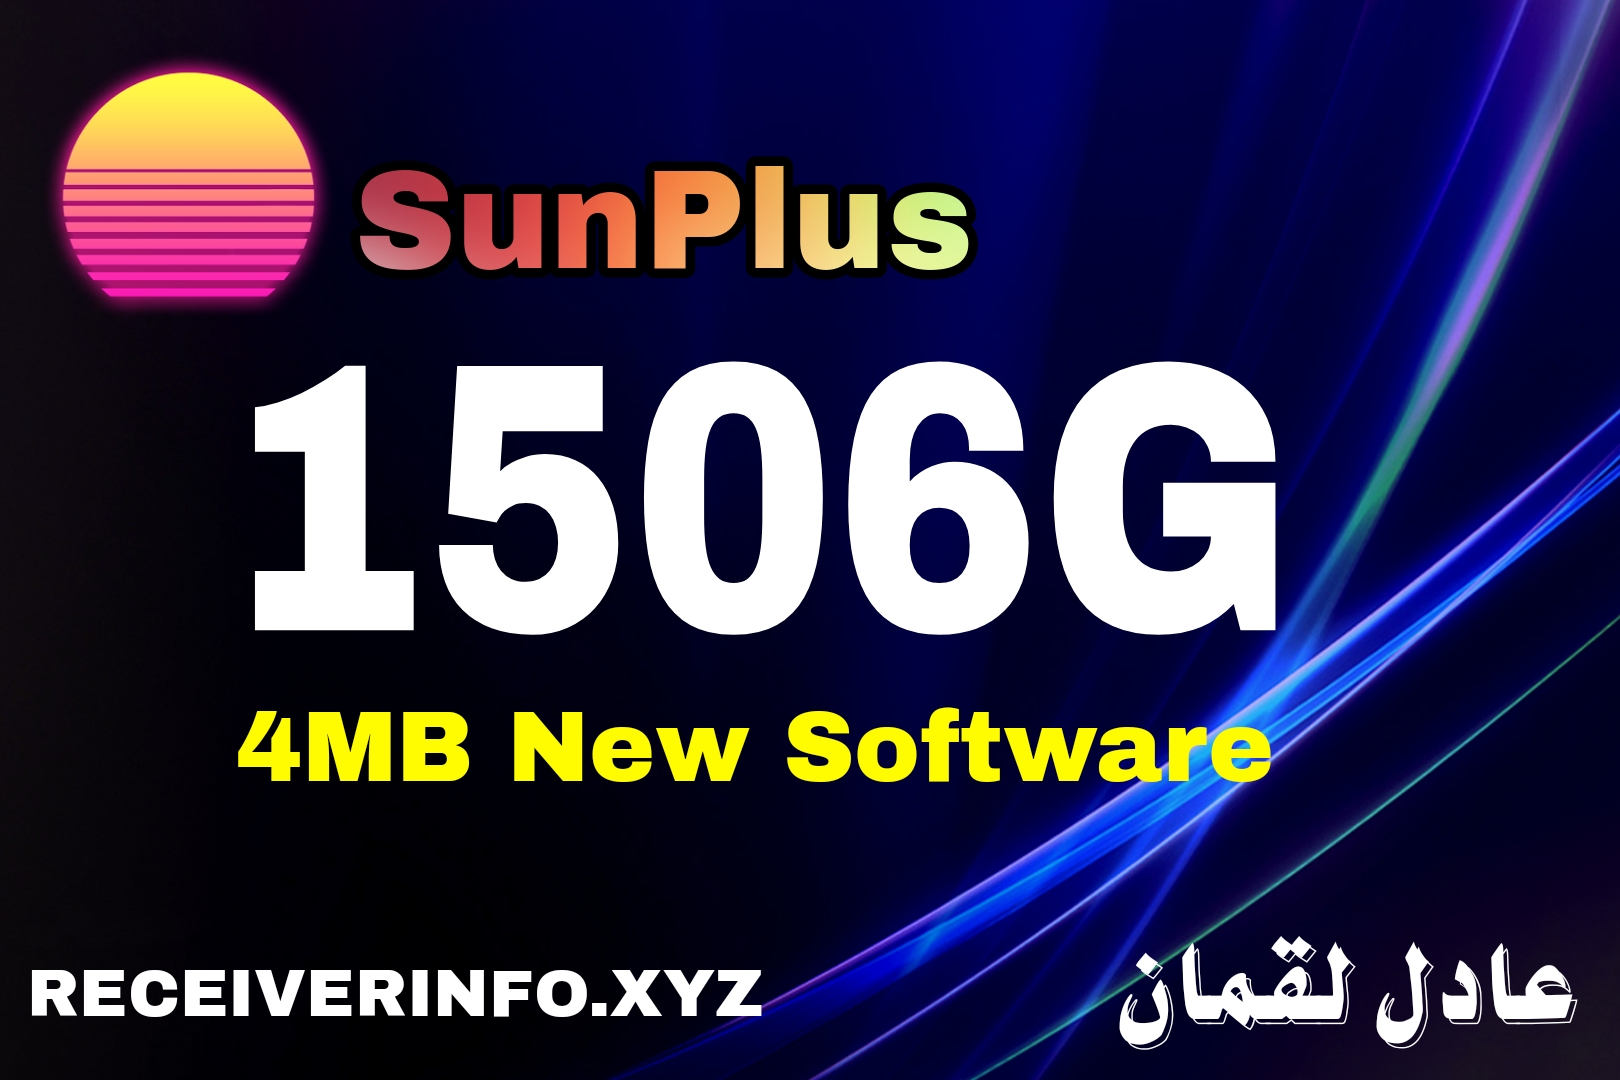 SUNPLUS CHIPSET 1506G HD RECEIVER ALL SOFTWARE